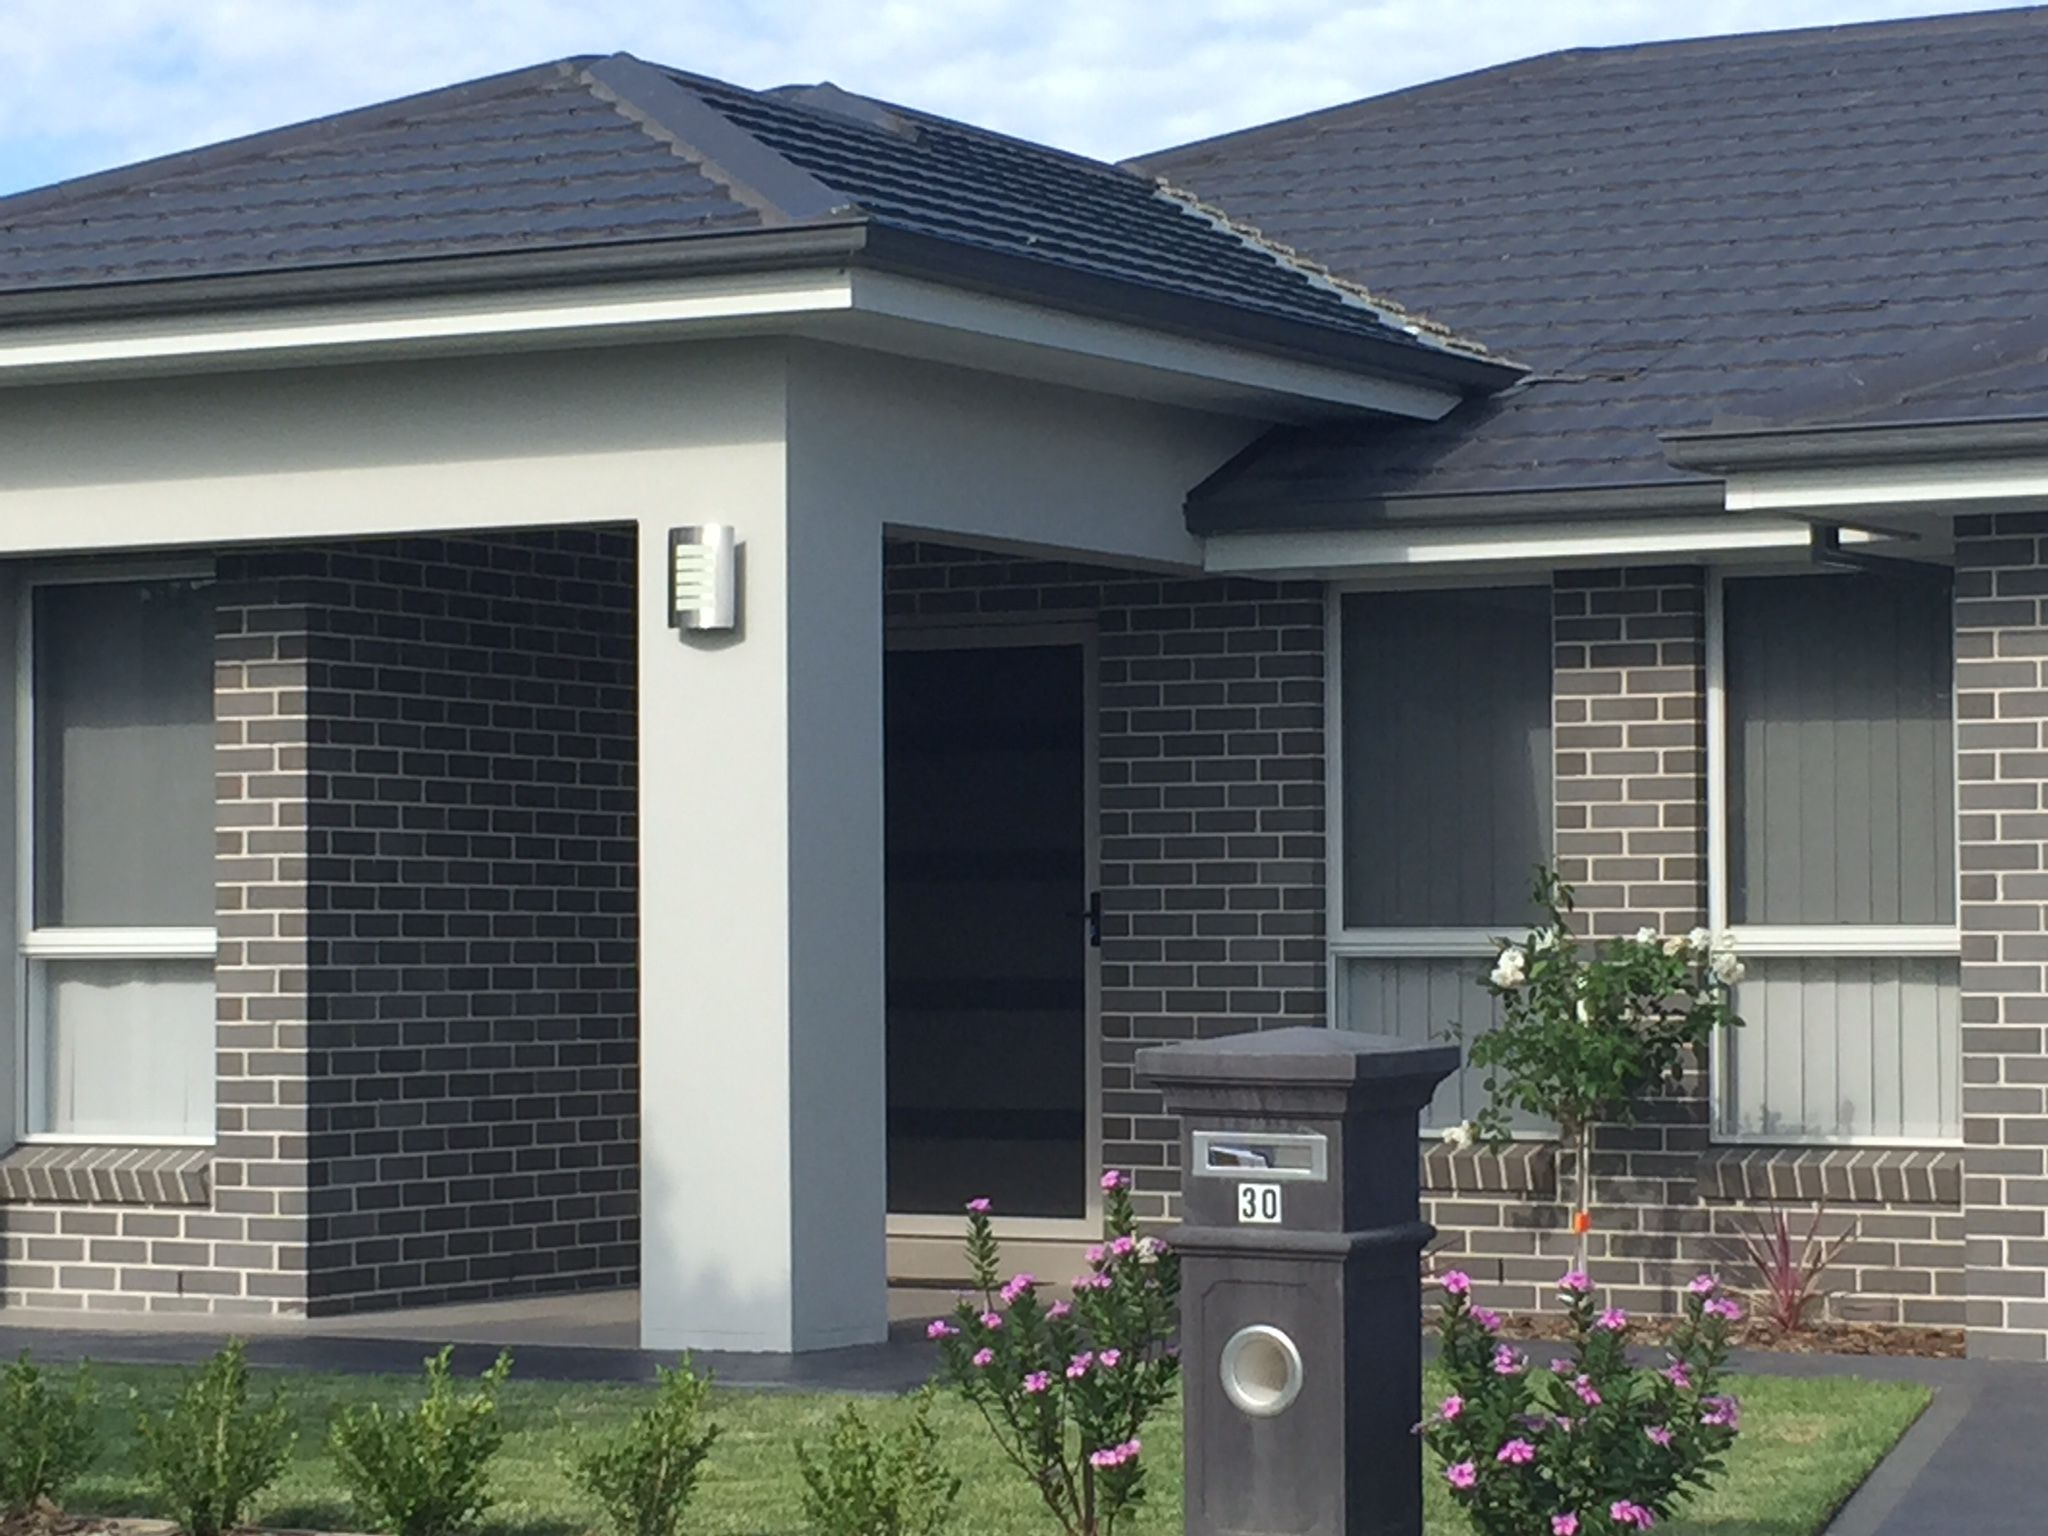 Colorbond roofing colours pictures to pin on pinterest -  Colours Roof And Gutters Colorbond Monument Bricks Austral Bricks Urban One Chiffon Garage Front Door Windows Fascia Colorbond Surfmist